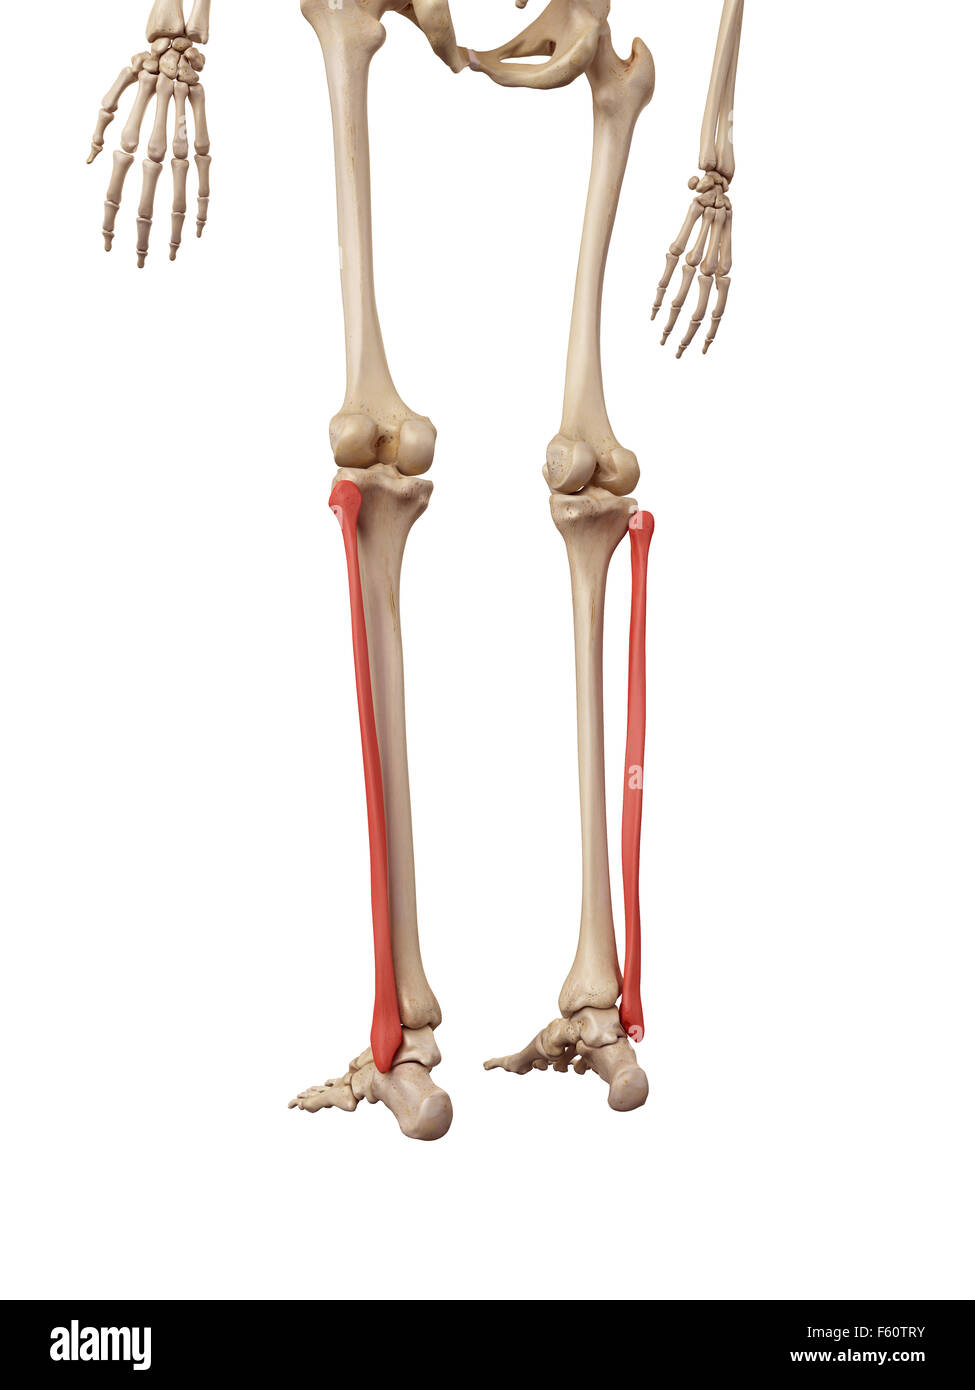 Lower Leg Bone Cut Out Stock Images & Pictures - Alamy